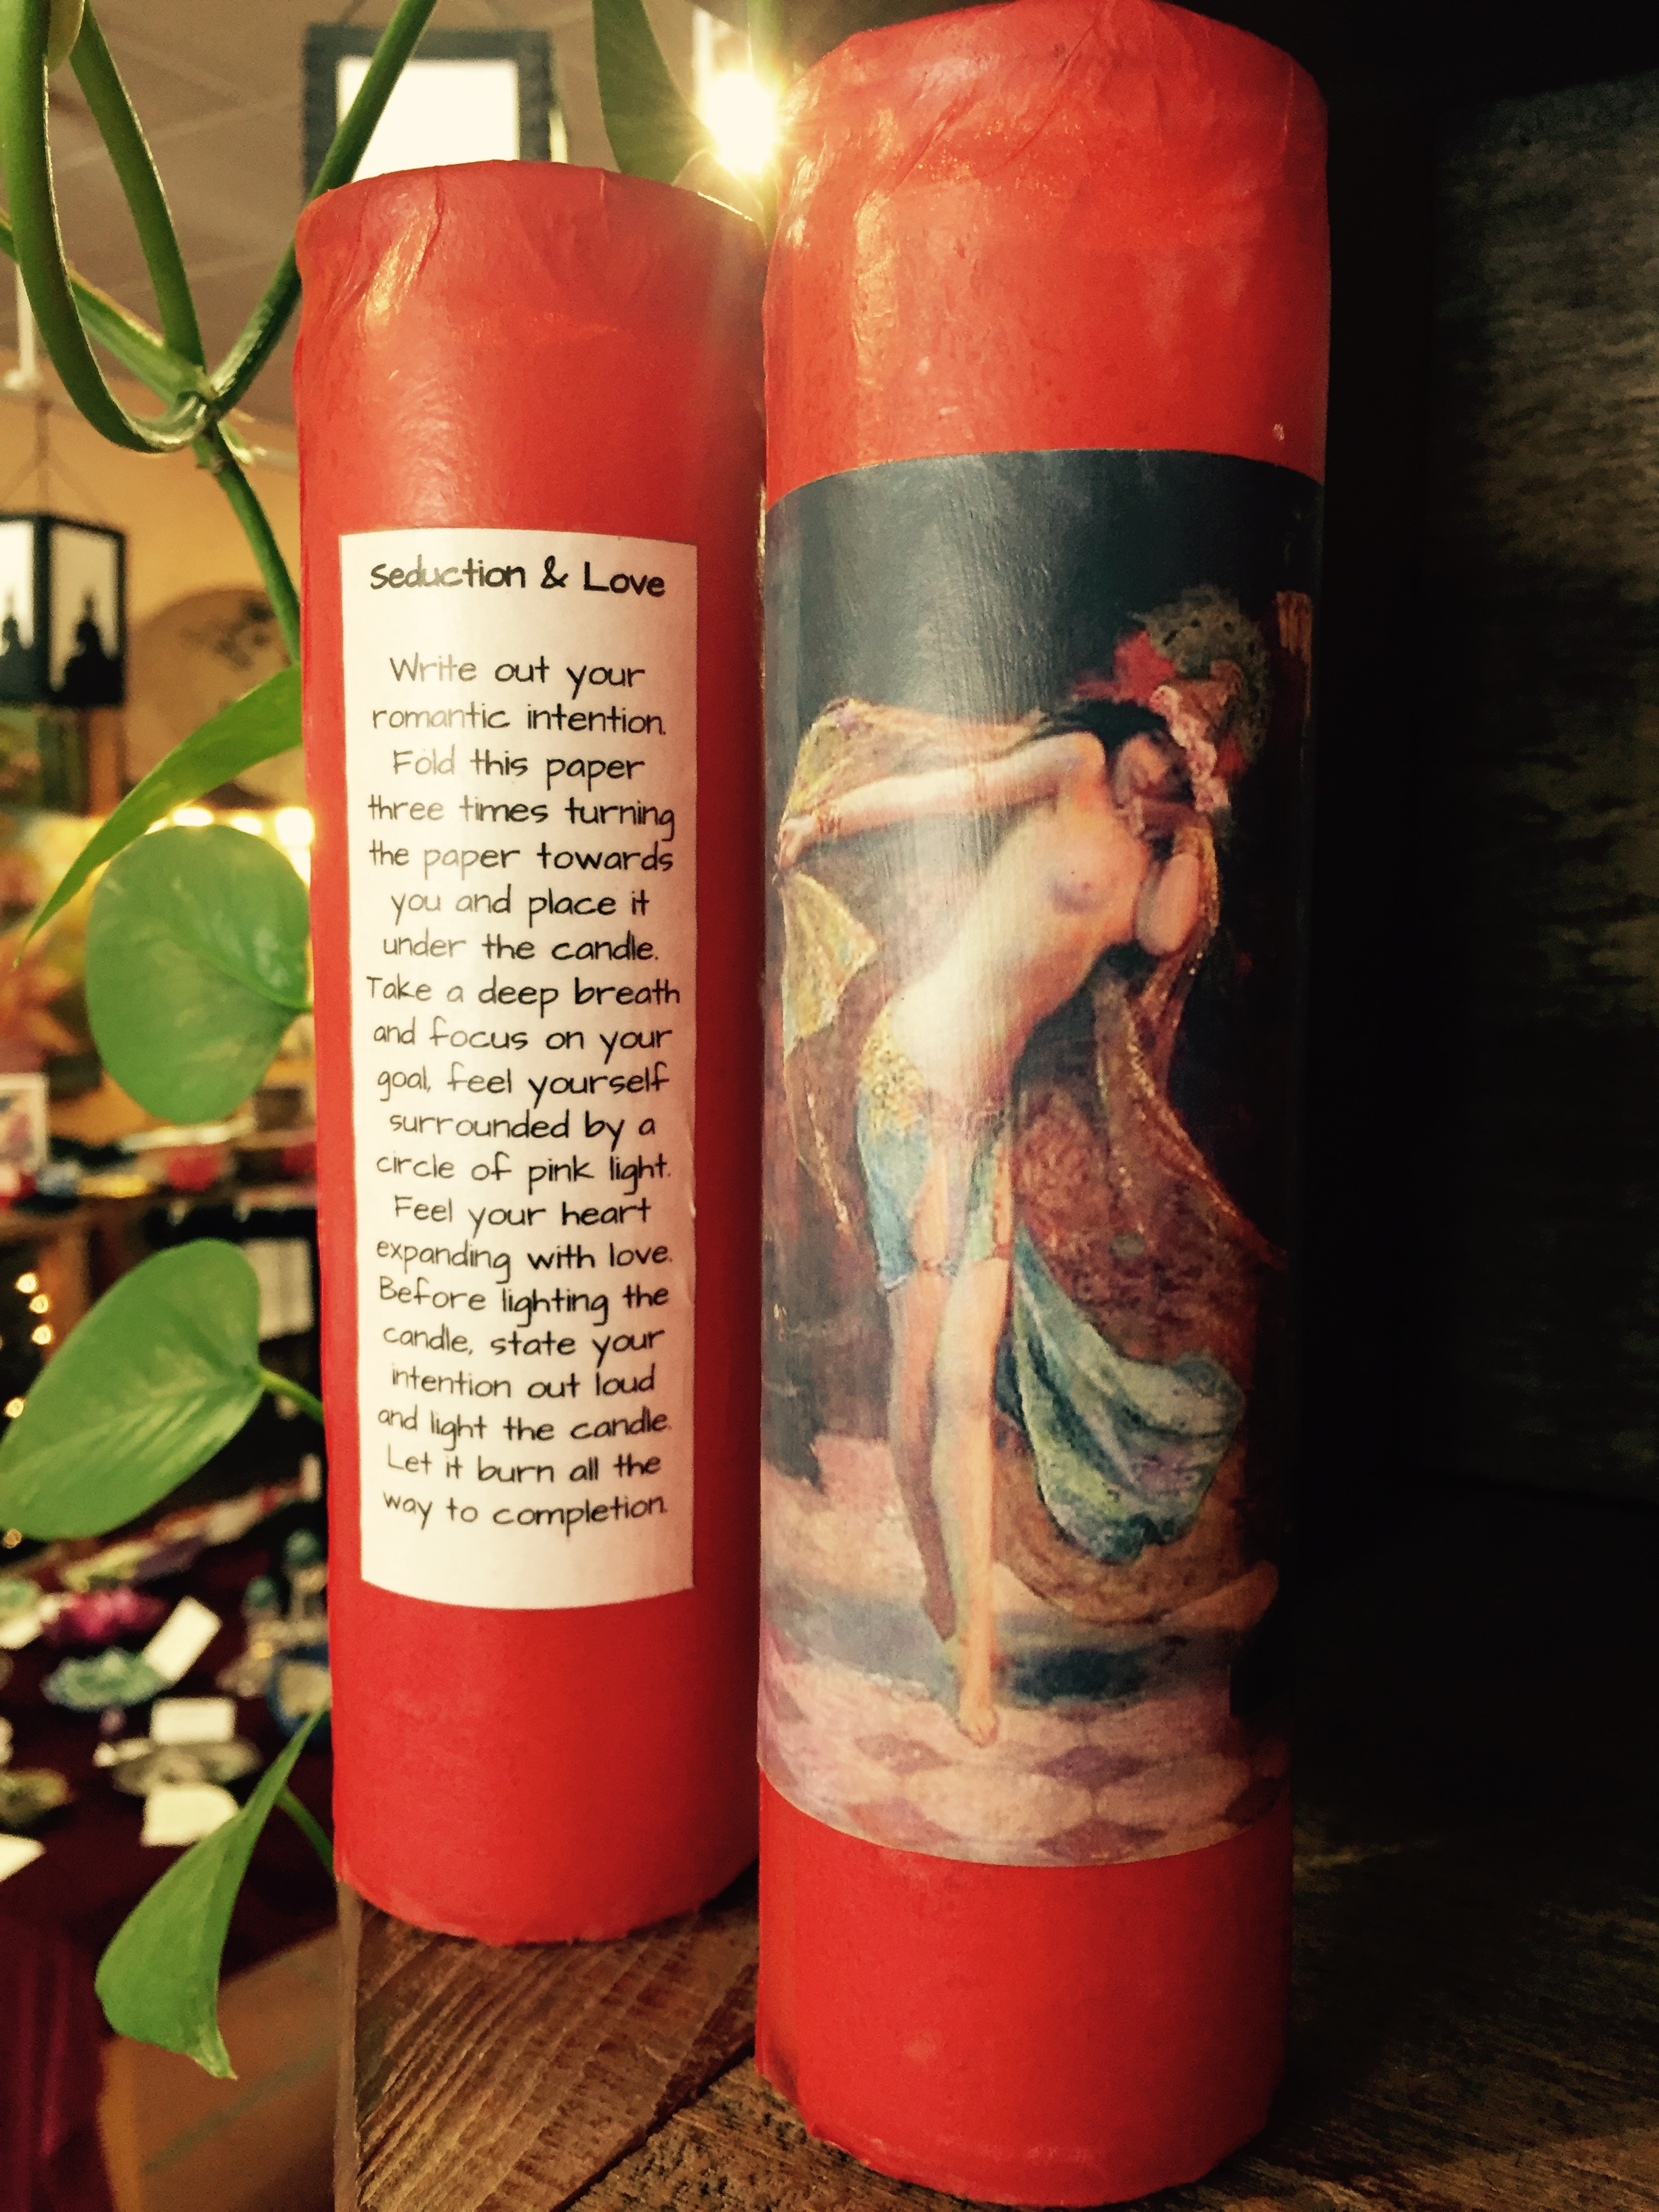 Seduction & Love Spell Candle